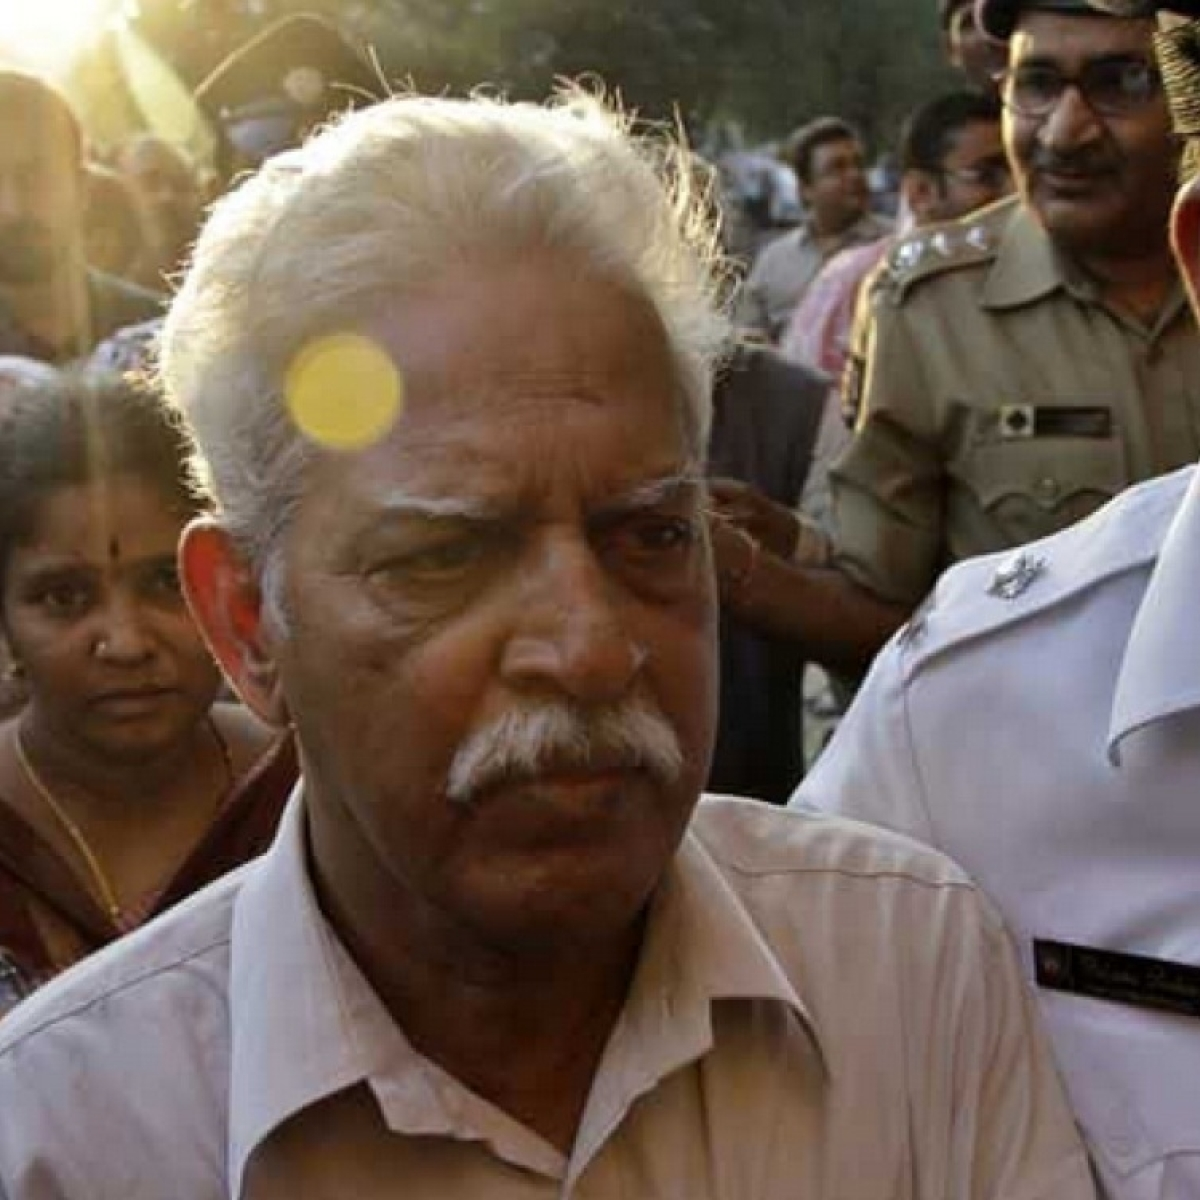 Elghar Parishad case: Varavara Rao taken to JJ hospital for 'checking fitness'